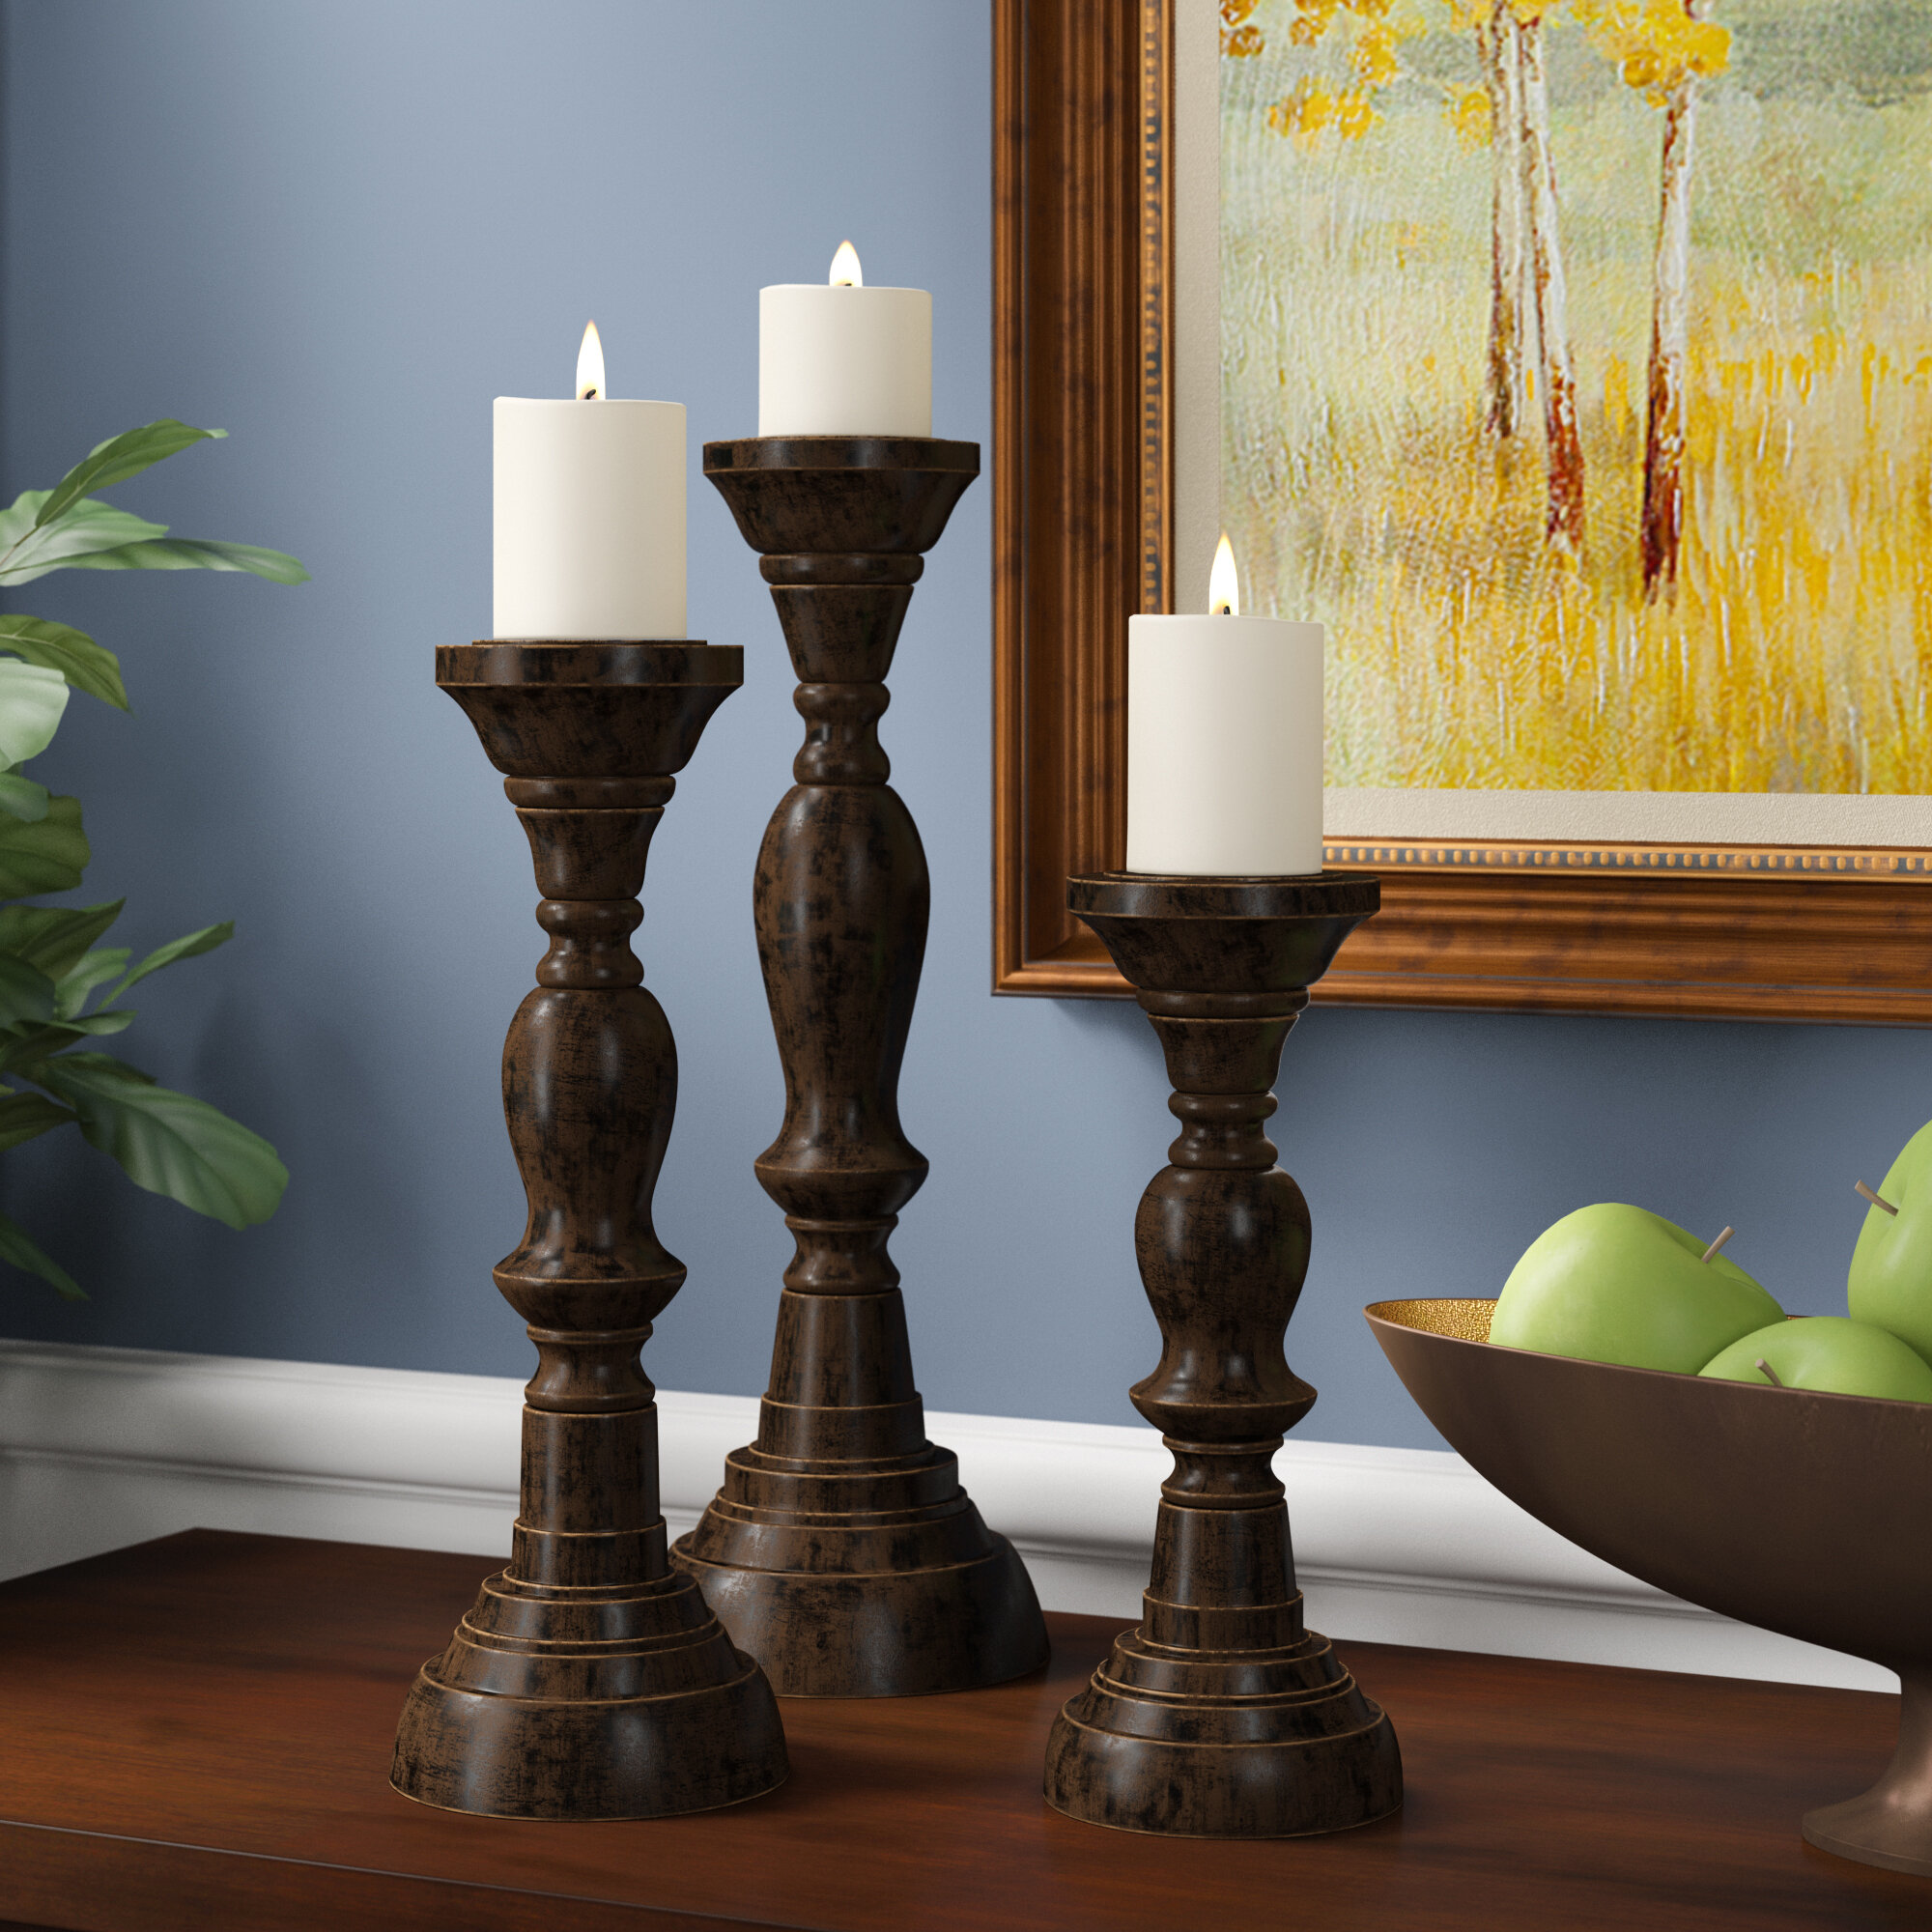 Prime Set Of 3 Candle Holders Youll Love In 2019 Wayfair Interior Design Ideas Gentotryabchikinfo